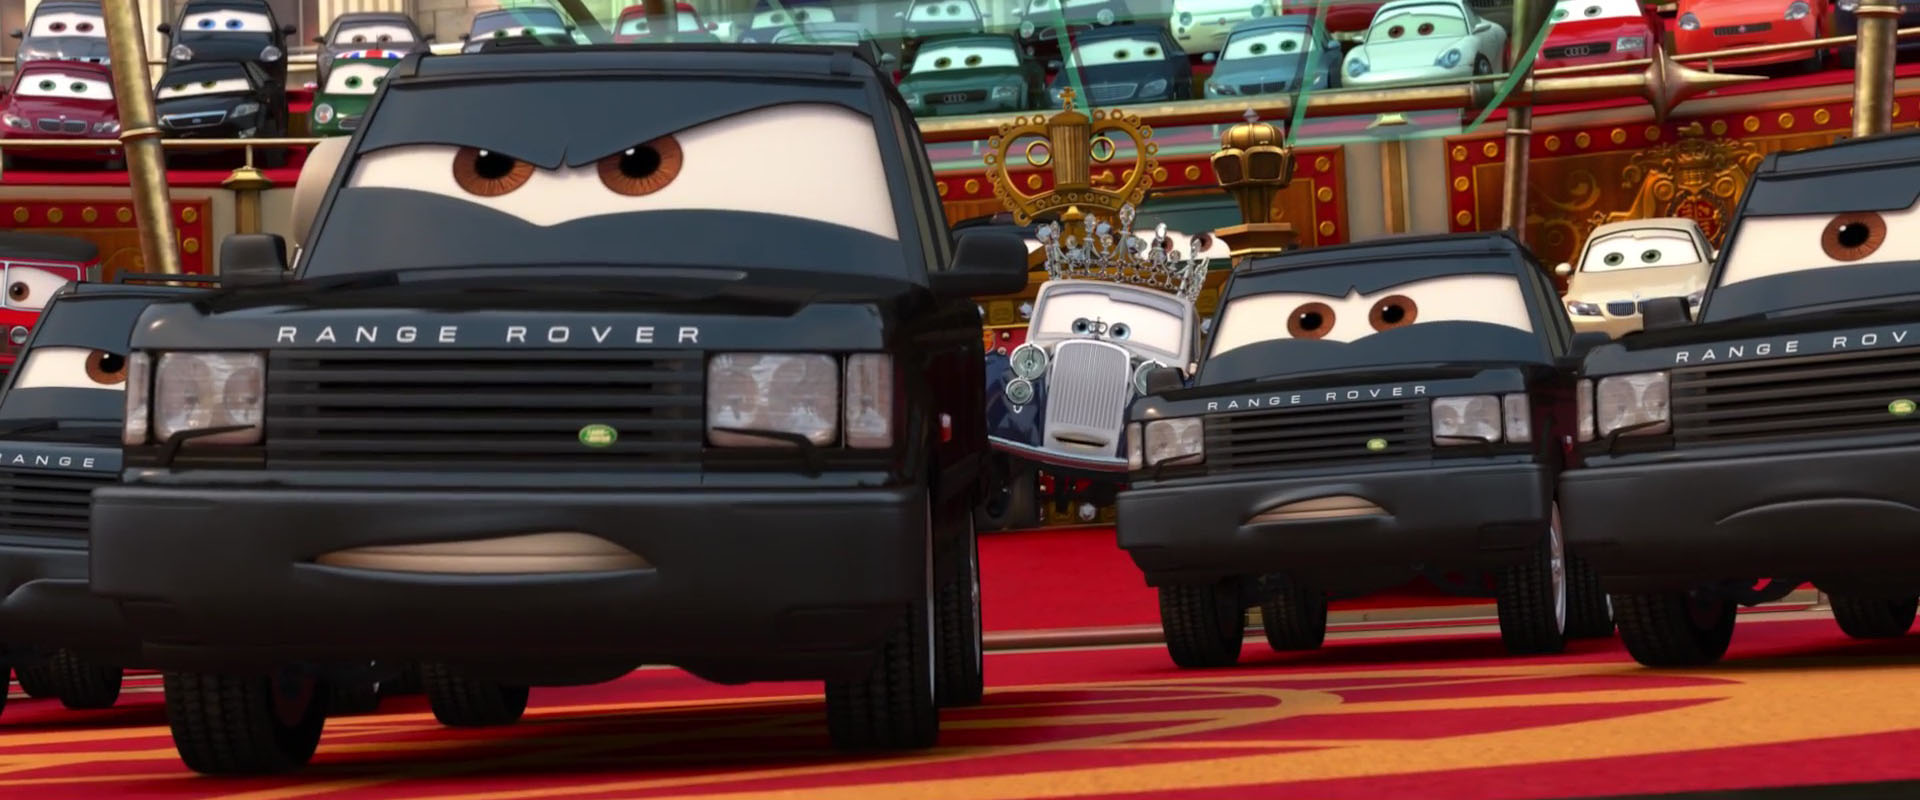 mike-lorengine-personnage-cars-2-01